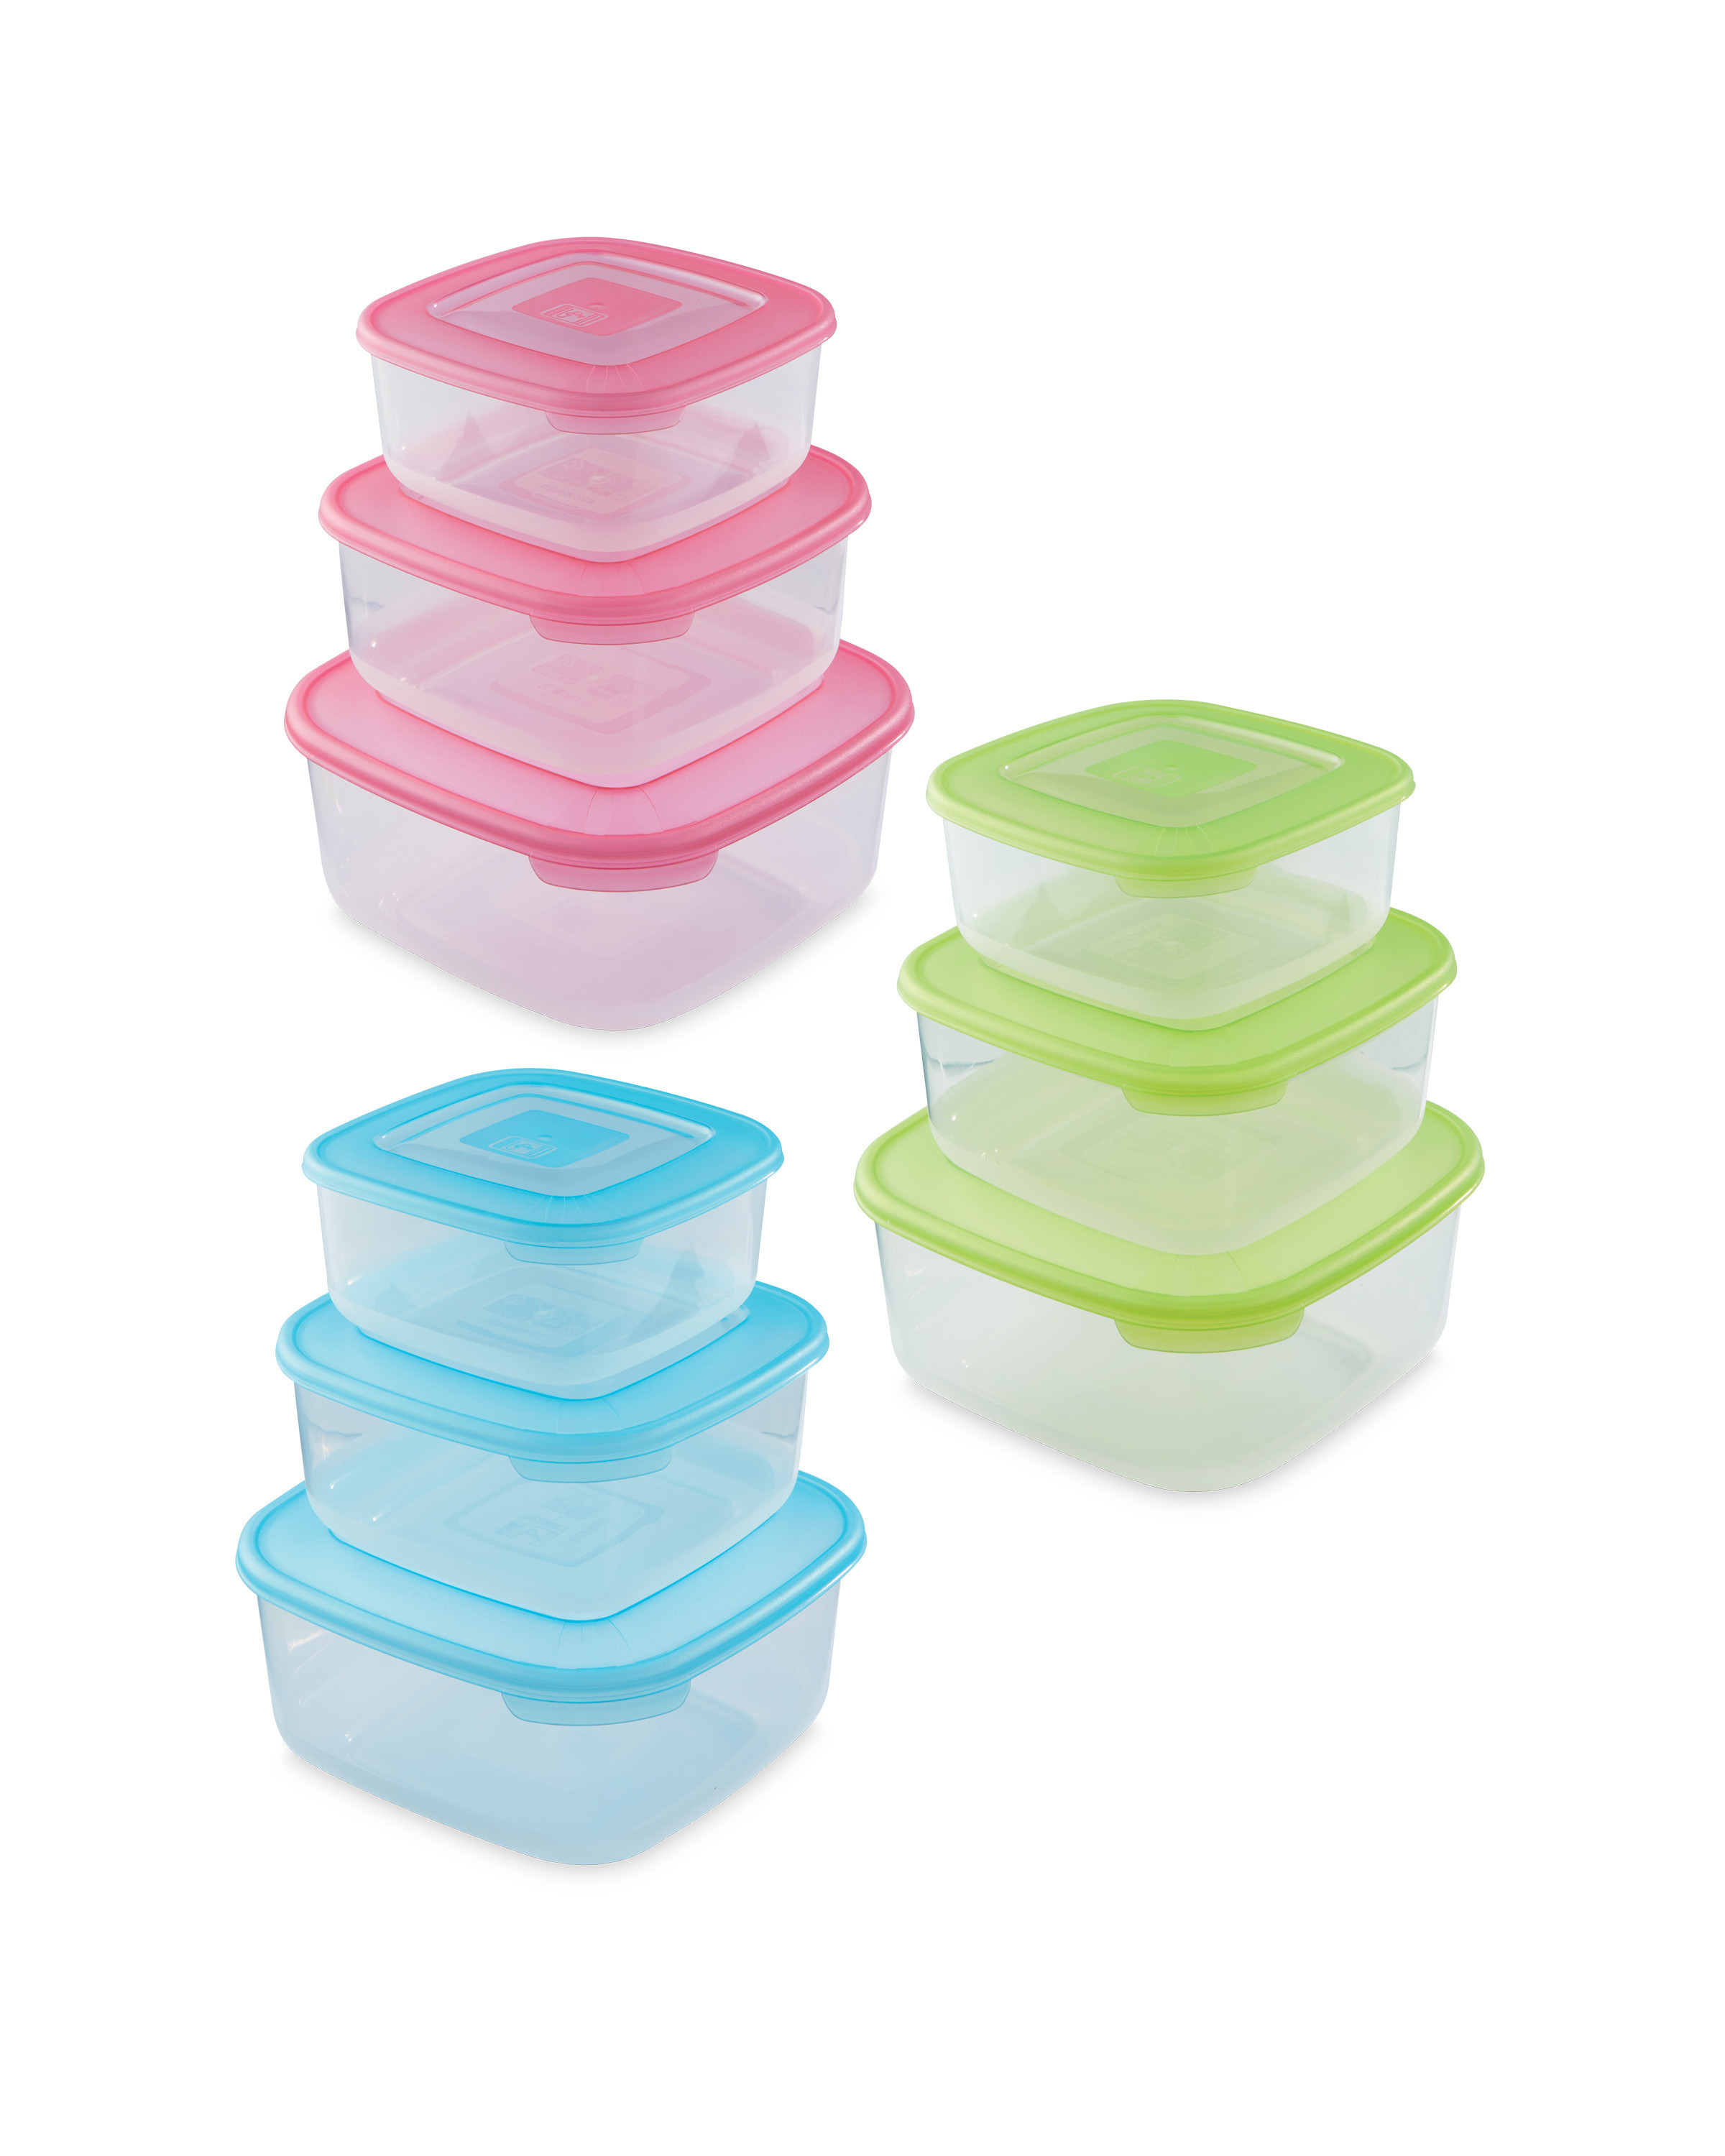 Square Food Storage Containers